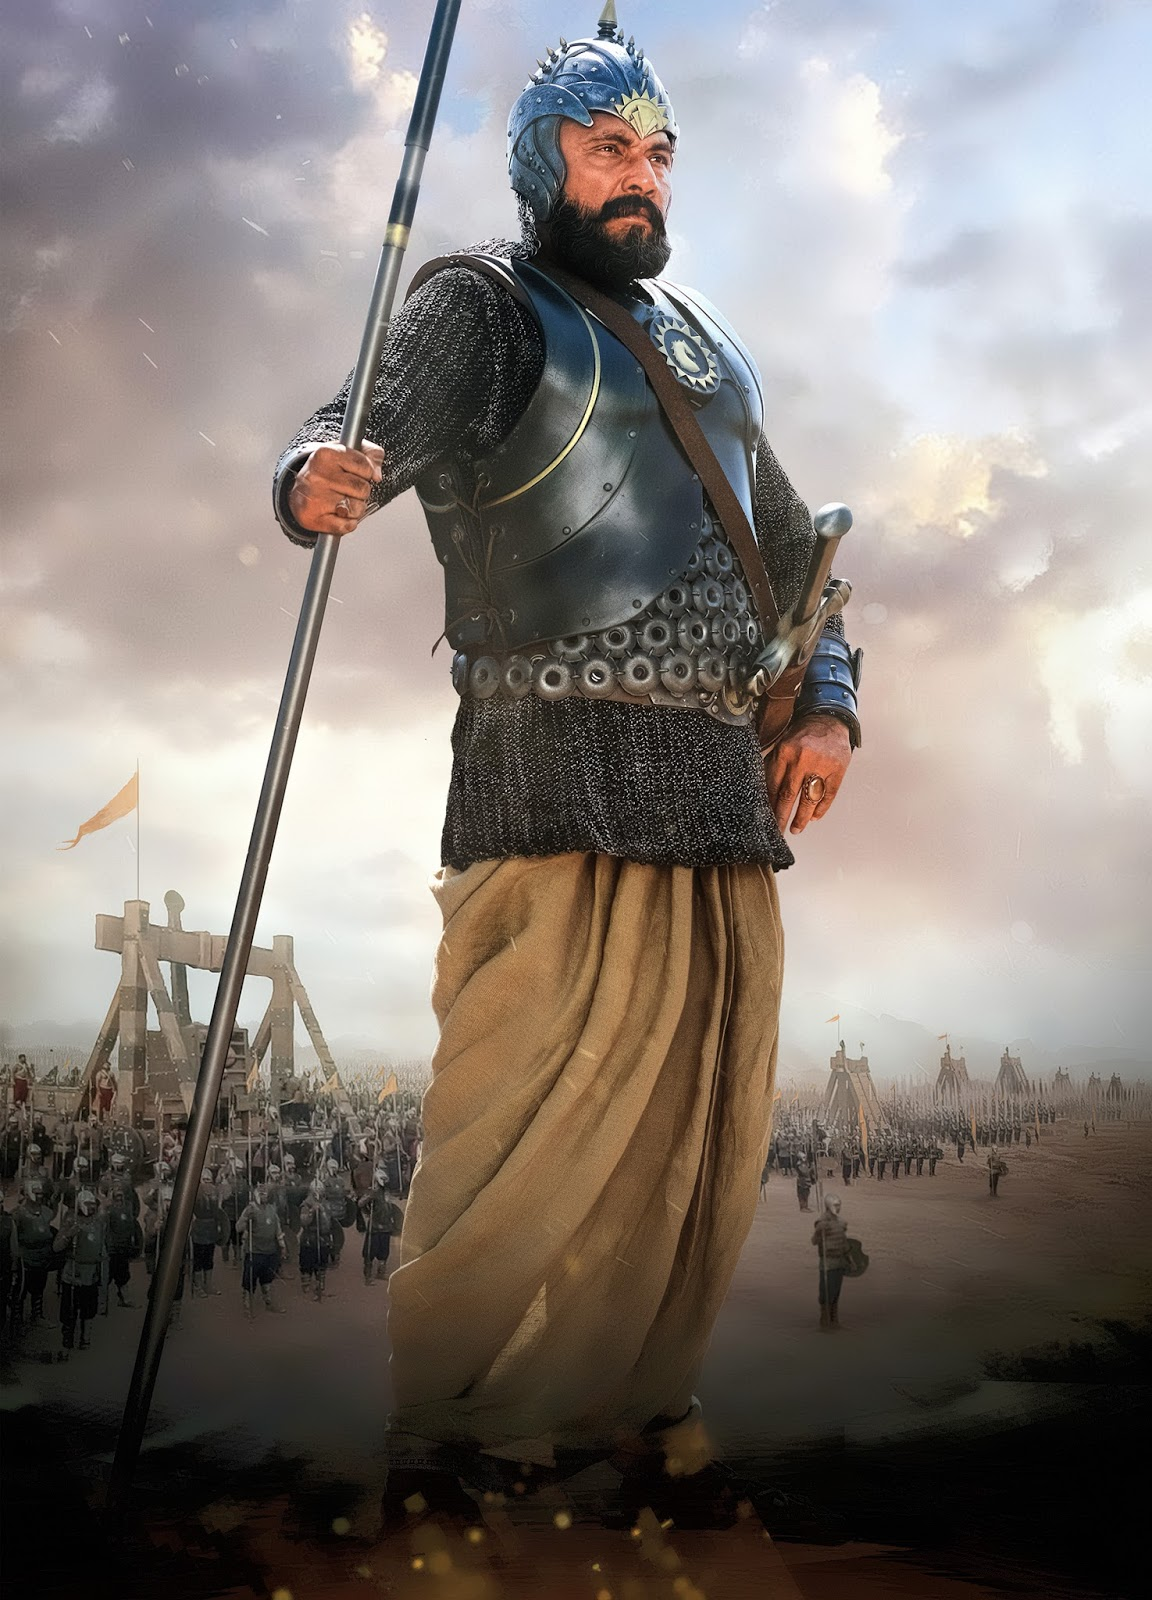 5 Star Auto >> Bahubali HD Wallpapers | HD Wallpapers (High Definition) | Free Background